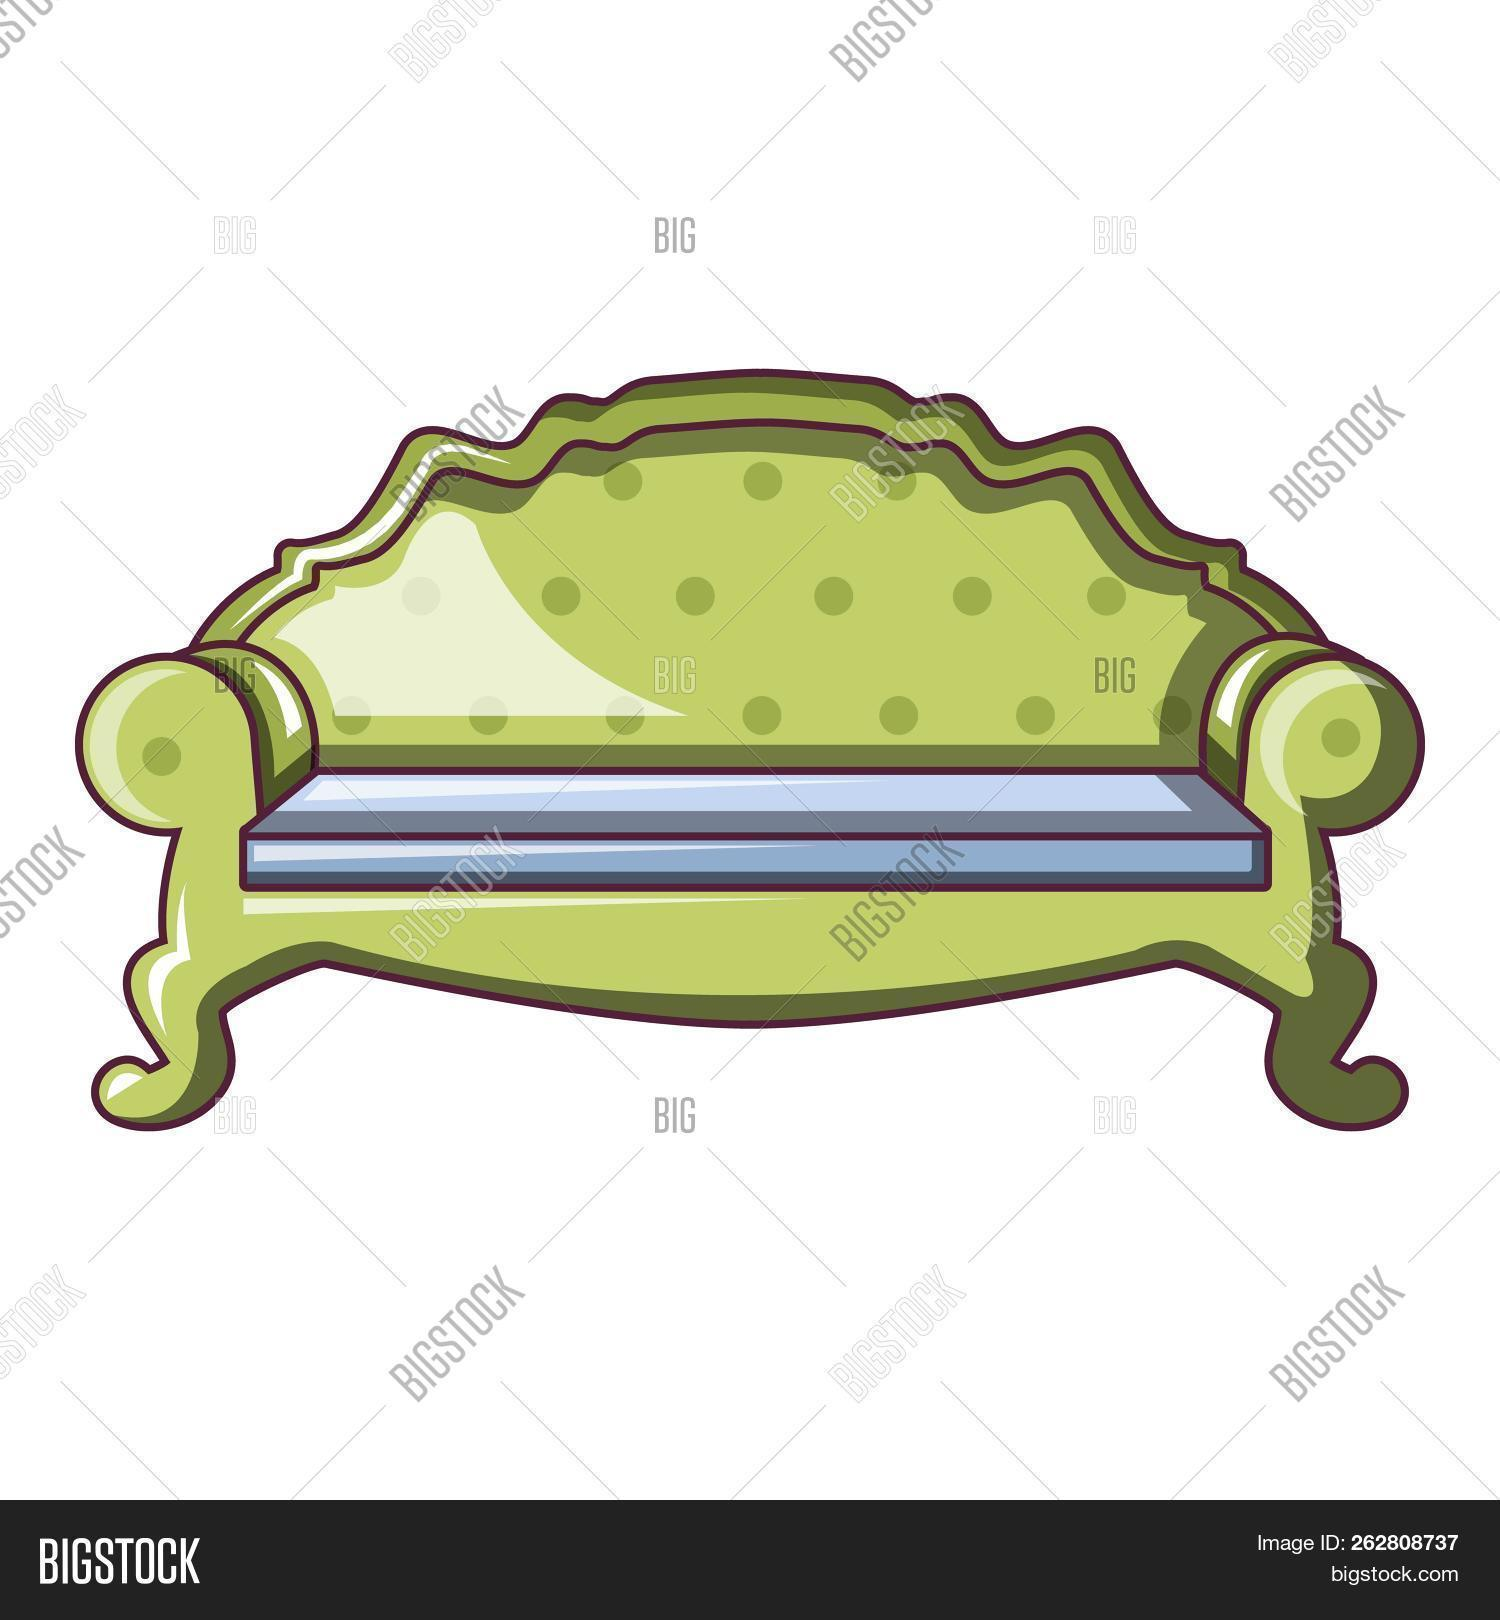 Pleasant Camel Back Sofa Icon Image Photo Free Trial Bigstock Ocoug Best Dining Table And Chair Ideas Images Ocougorg